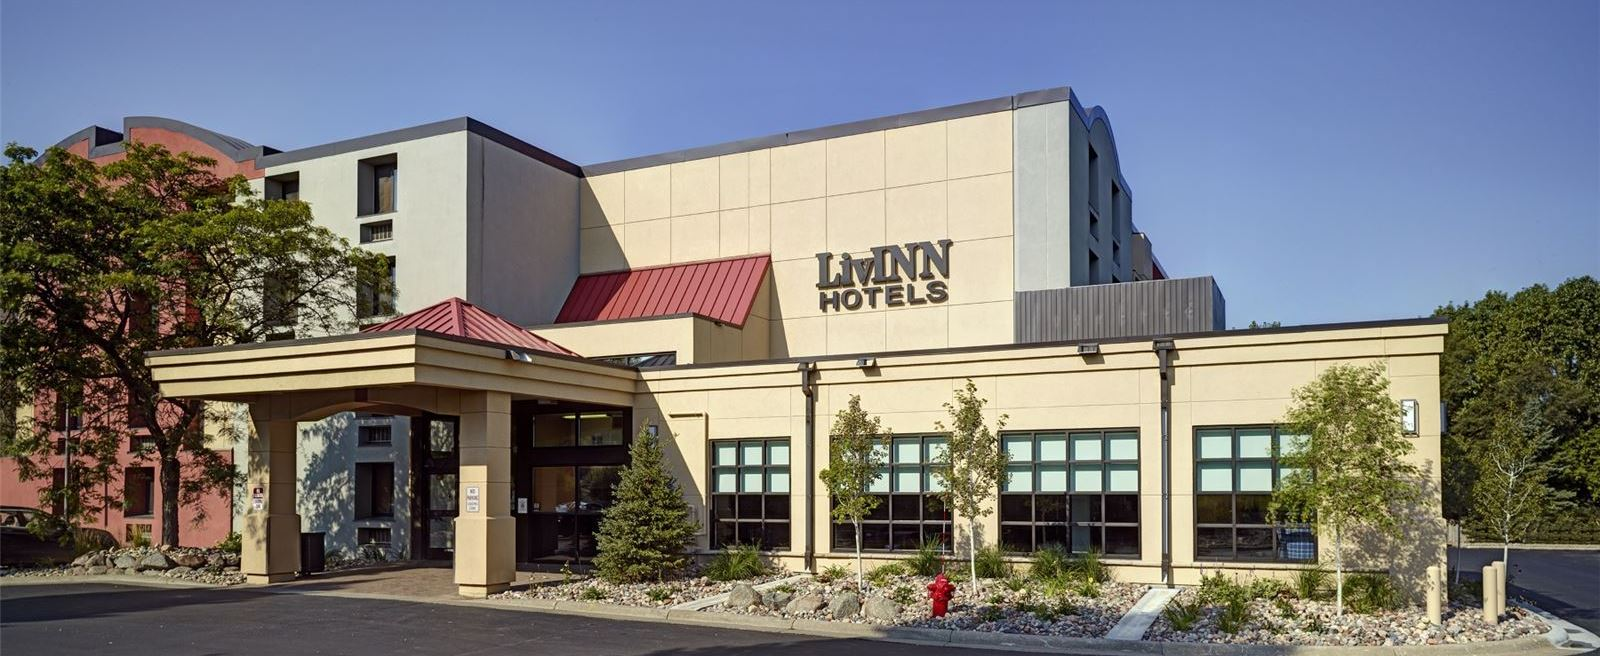 About LivINN Hotels, Minneapolis